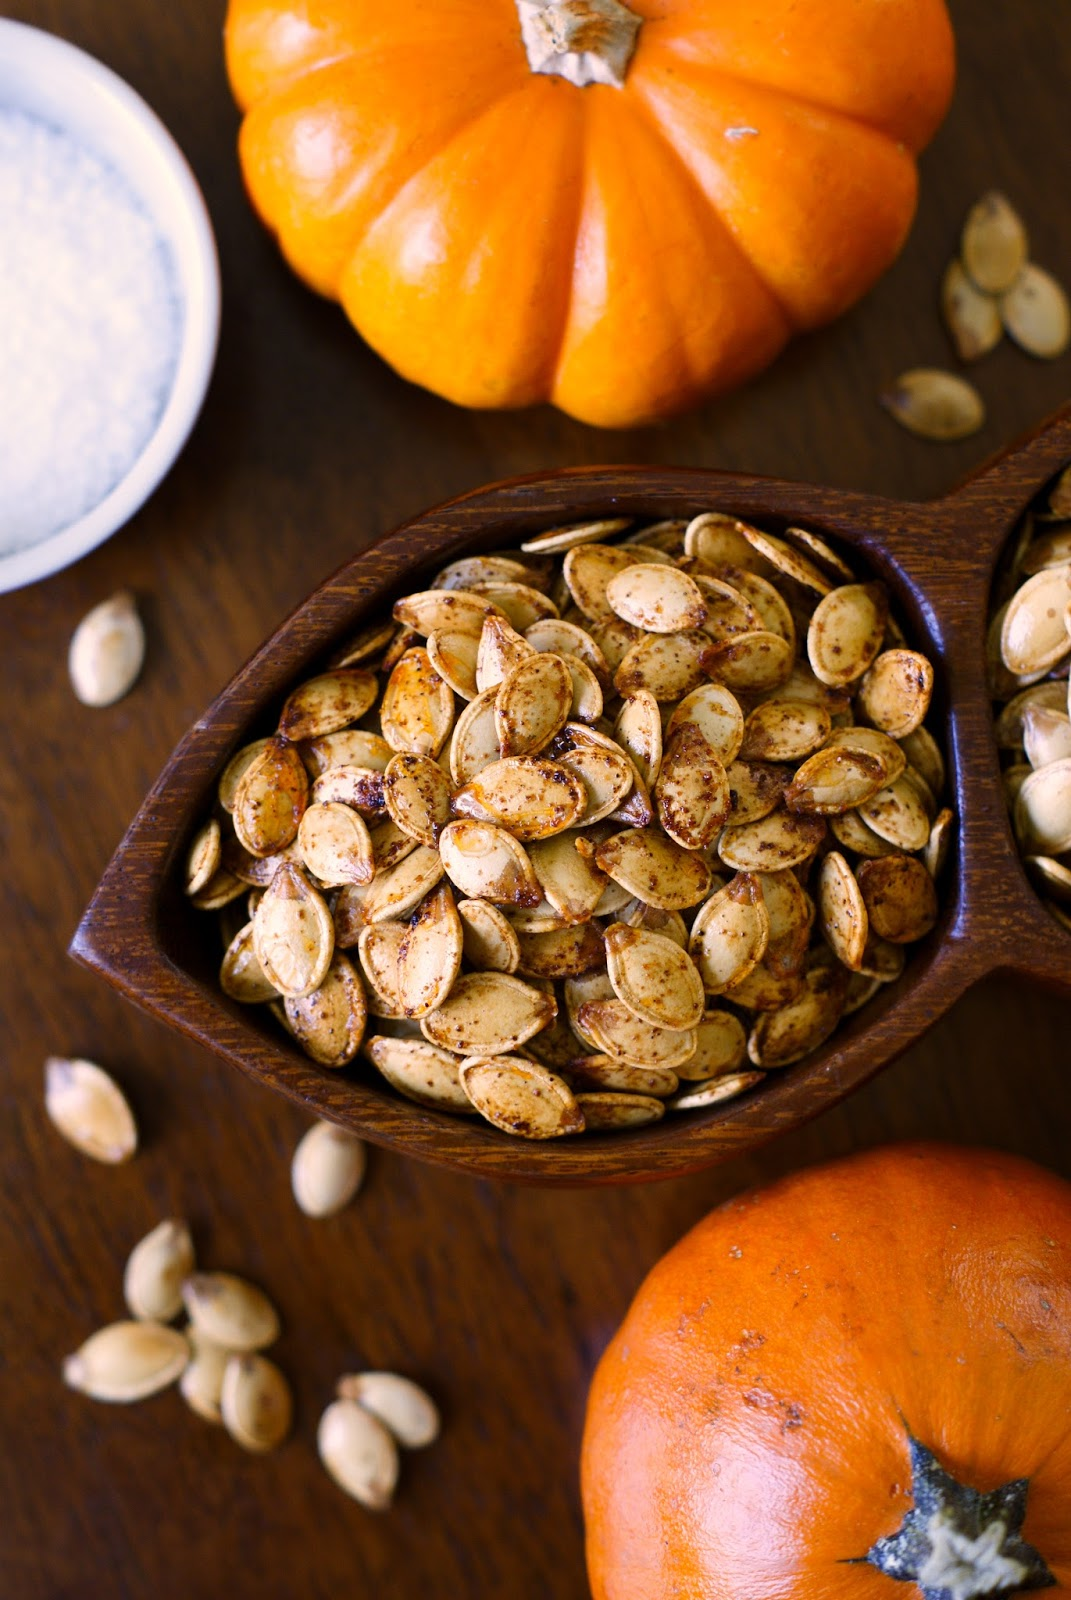 Roasted Pumpkin Seeds is a fall tradition!  When you carve your pumpkins, roast the seeds in the oven for a festive, crispy, delicious snack.